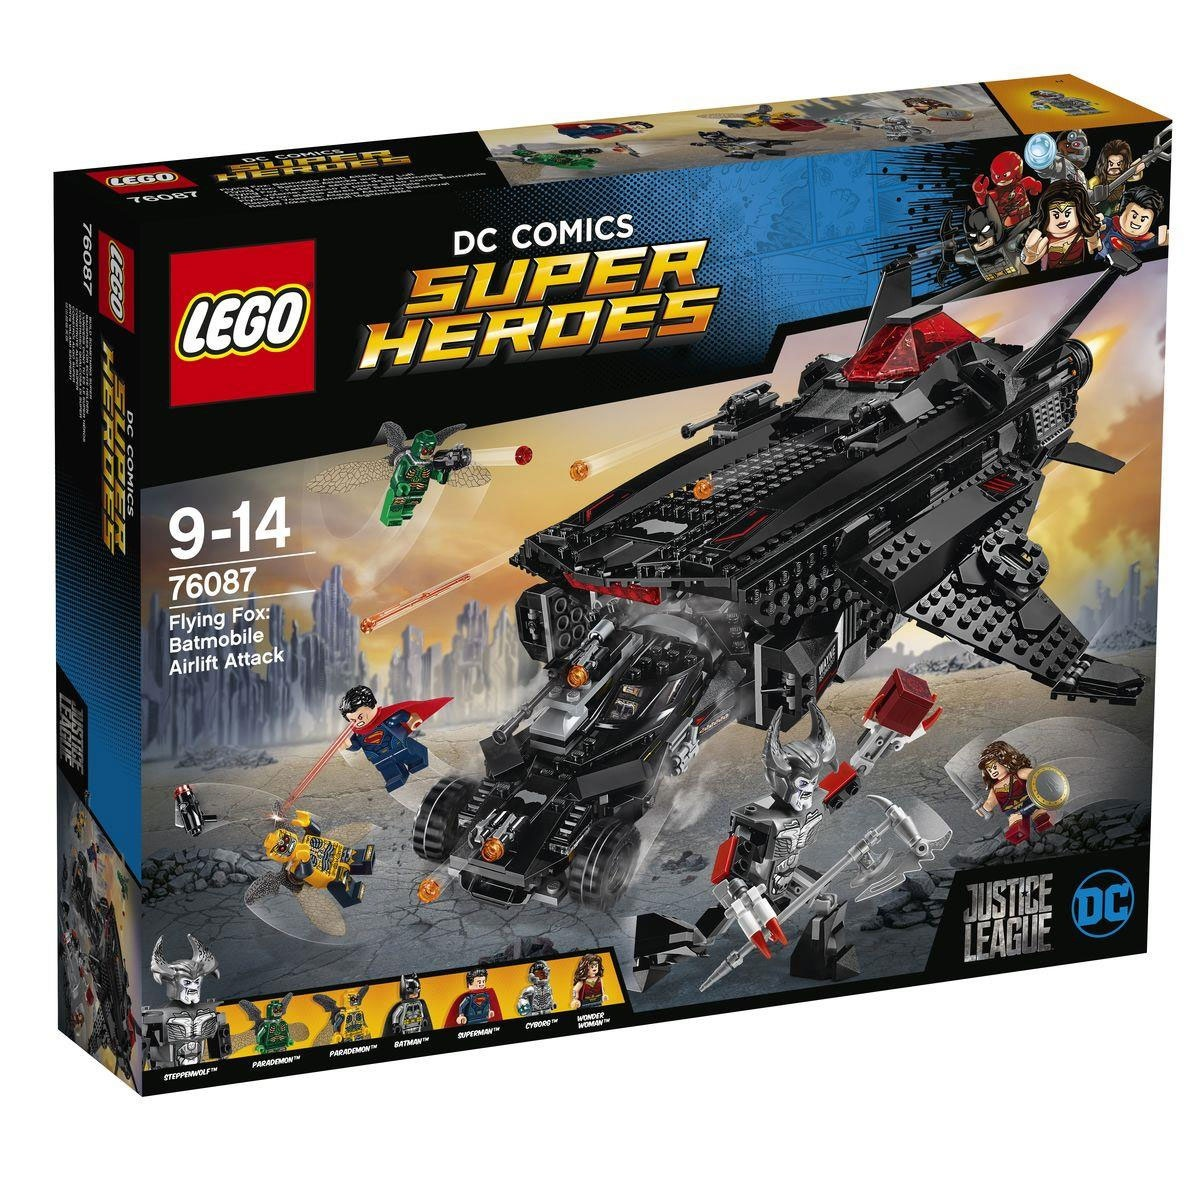 Lego DC Comics Super Heroes 76087 Flying Fox Batmobil-Attack